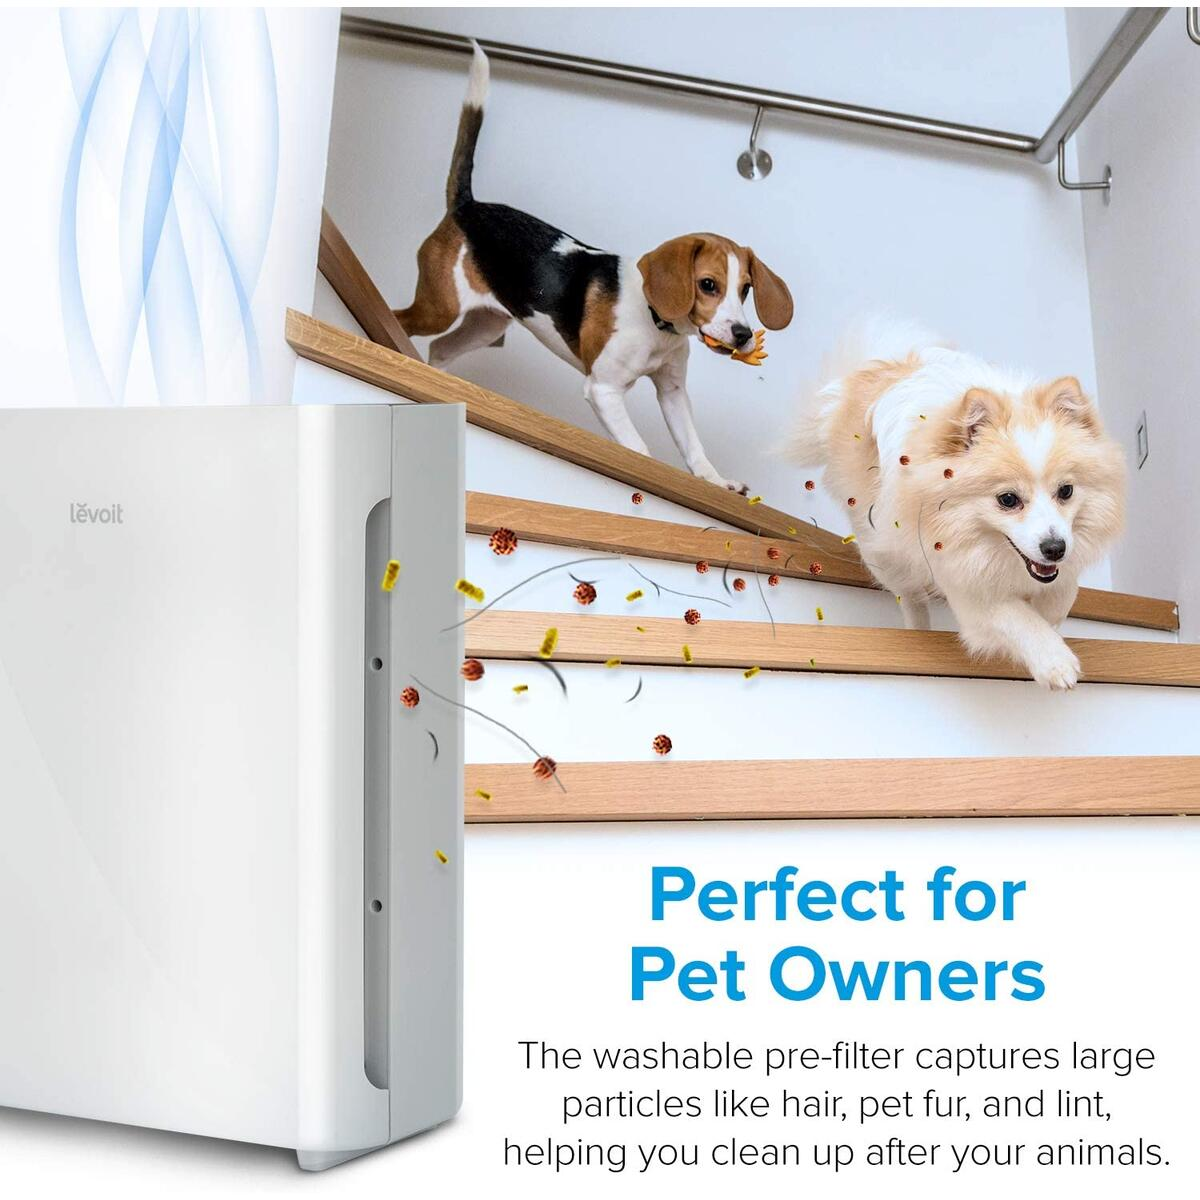 LEVOIT Air Purifier for Home with H13 True HEPA Filter Cleaner for Allergies and Pets, Smokers, Mold, Pollen, Dust, Quiet Odor Eliminators for Bedroom (1 Pack).